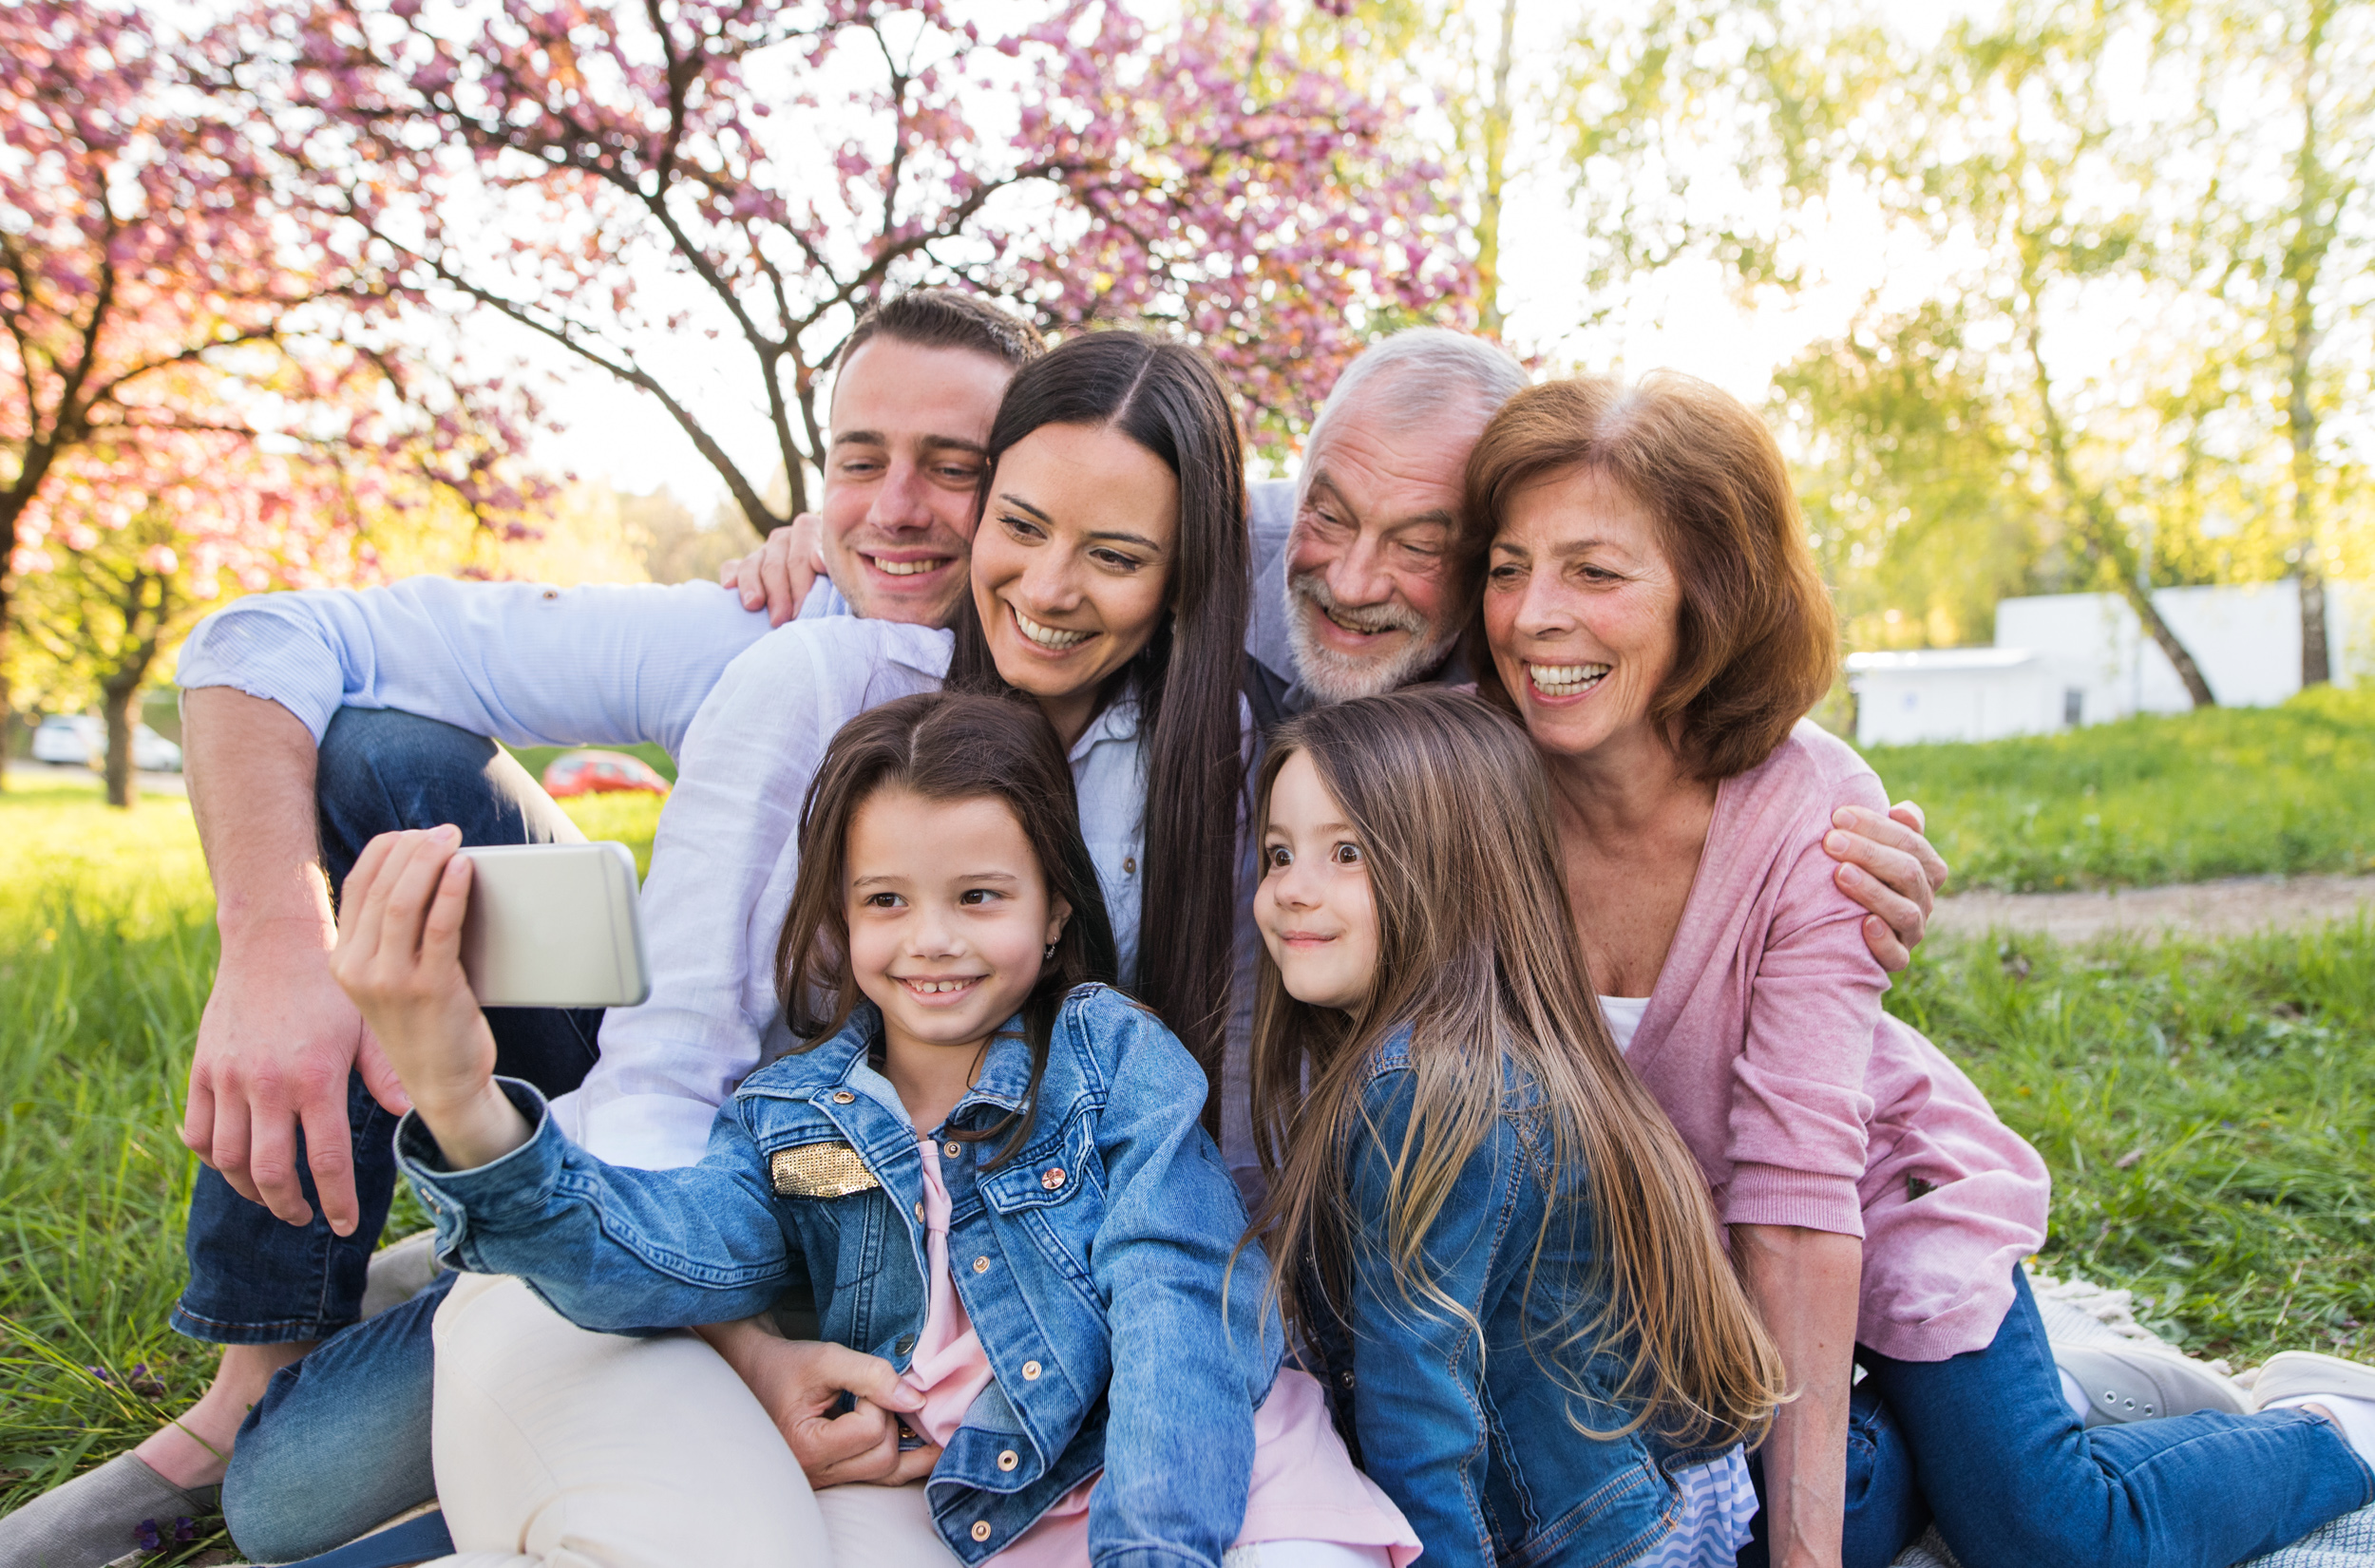 Moss Family Dentistry has dental services for all ages